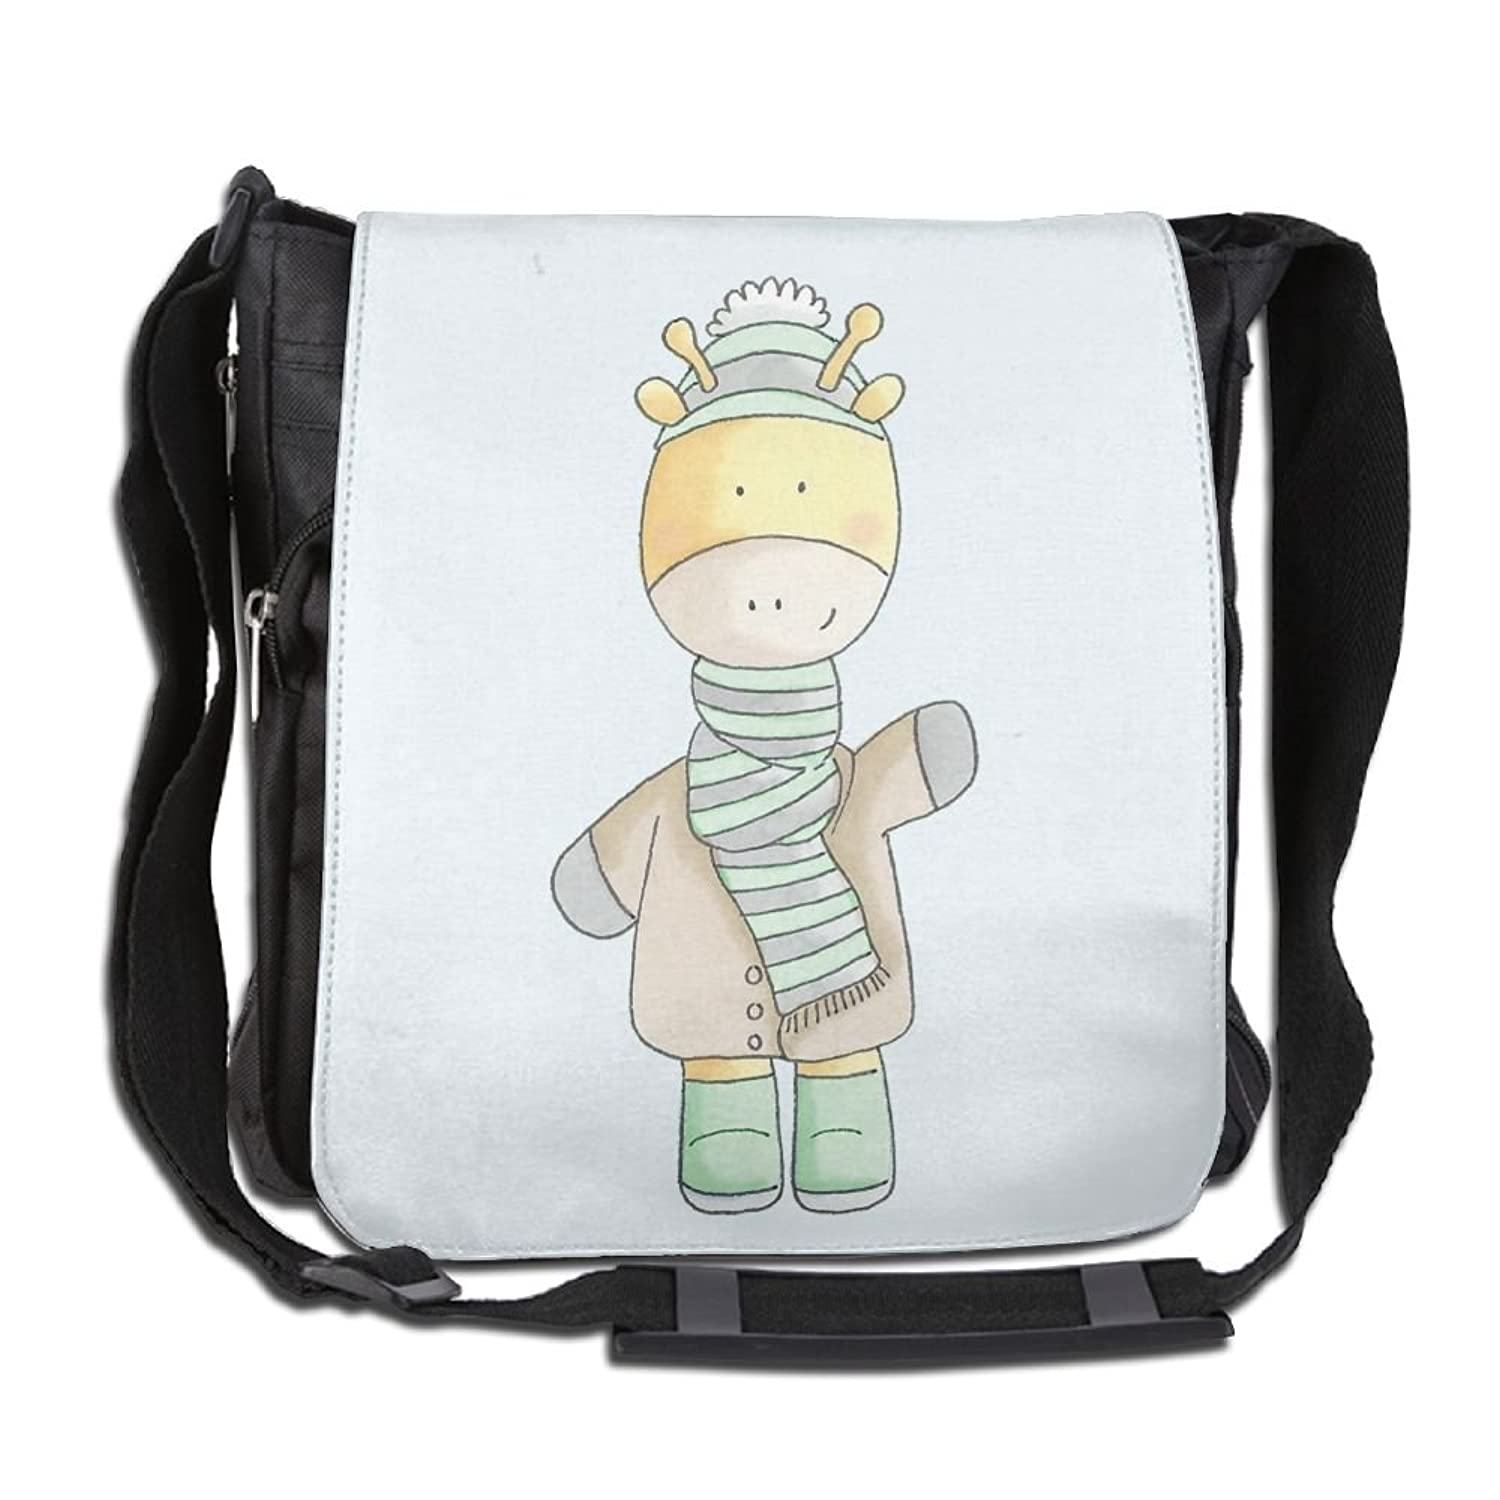 A Giraffe In Clothes Custom Unisex Polyester Fiber Messenger Bag Cross-Body Bag Daypack Bag